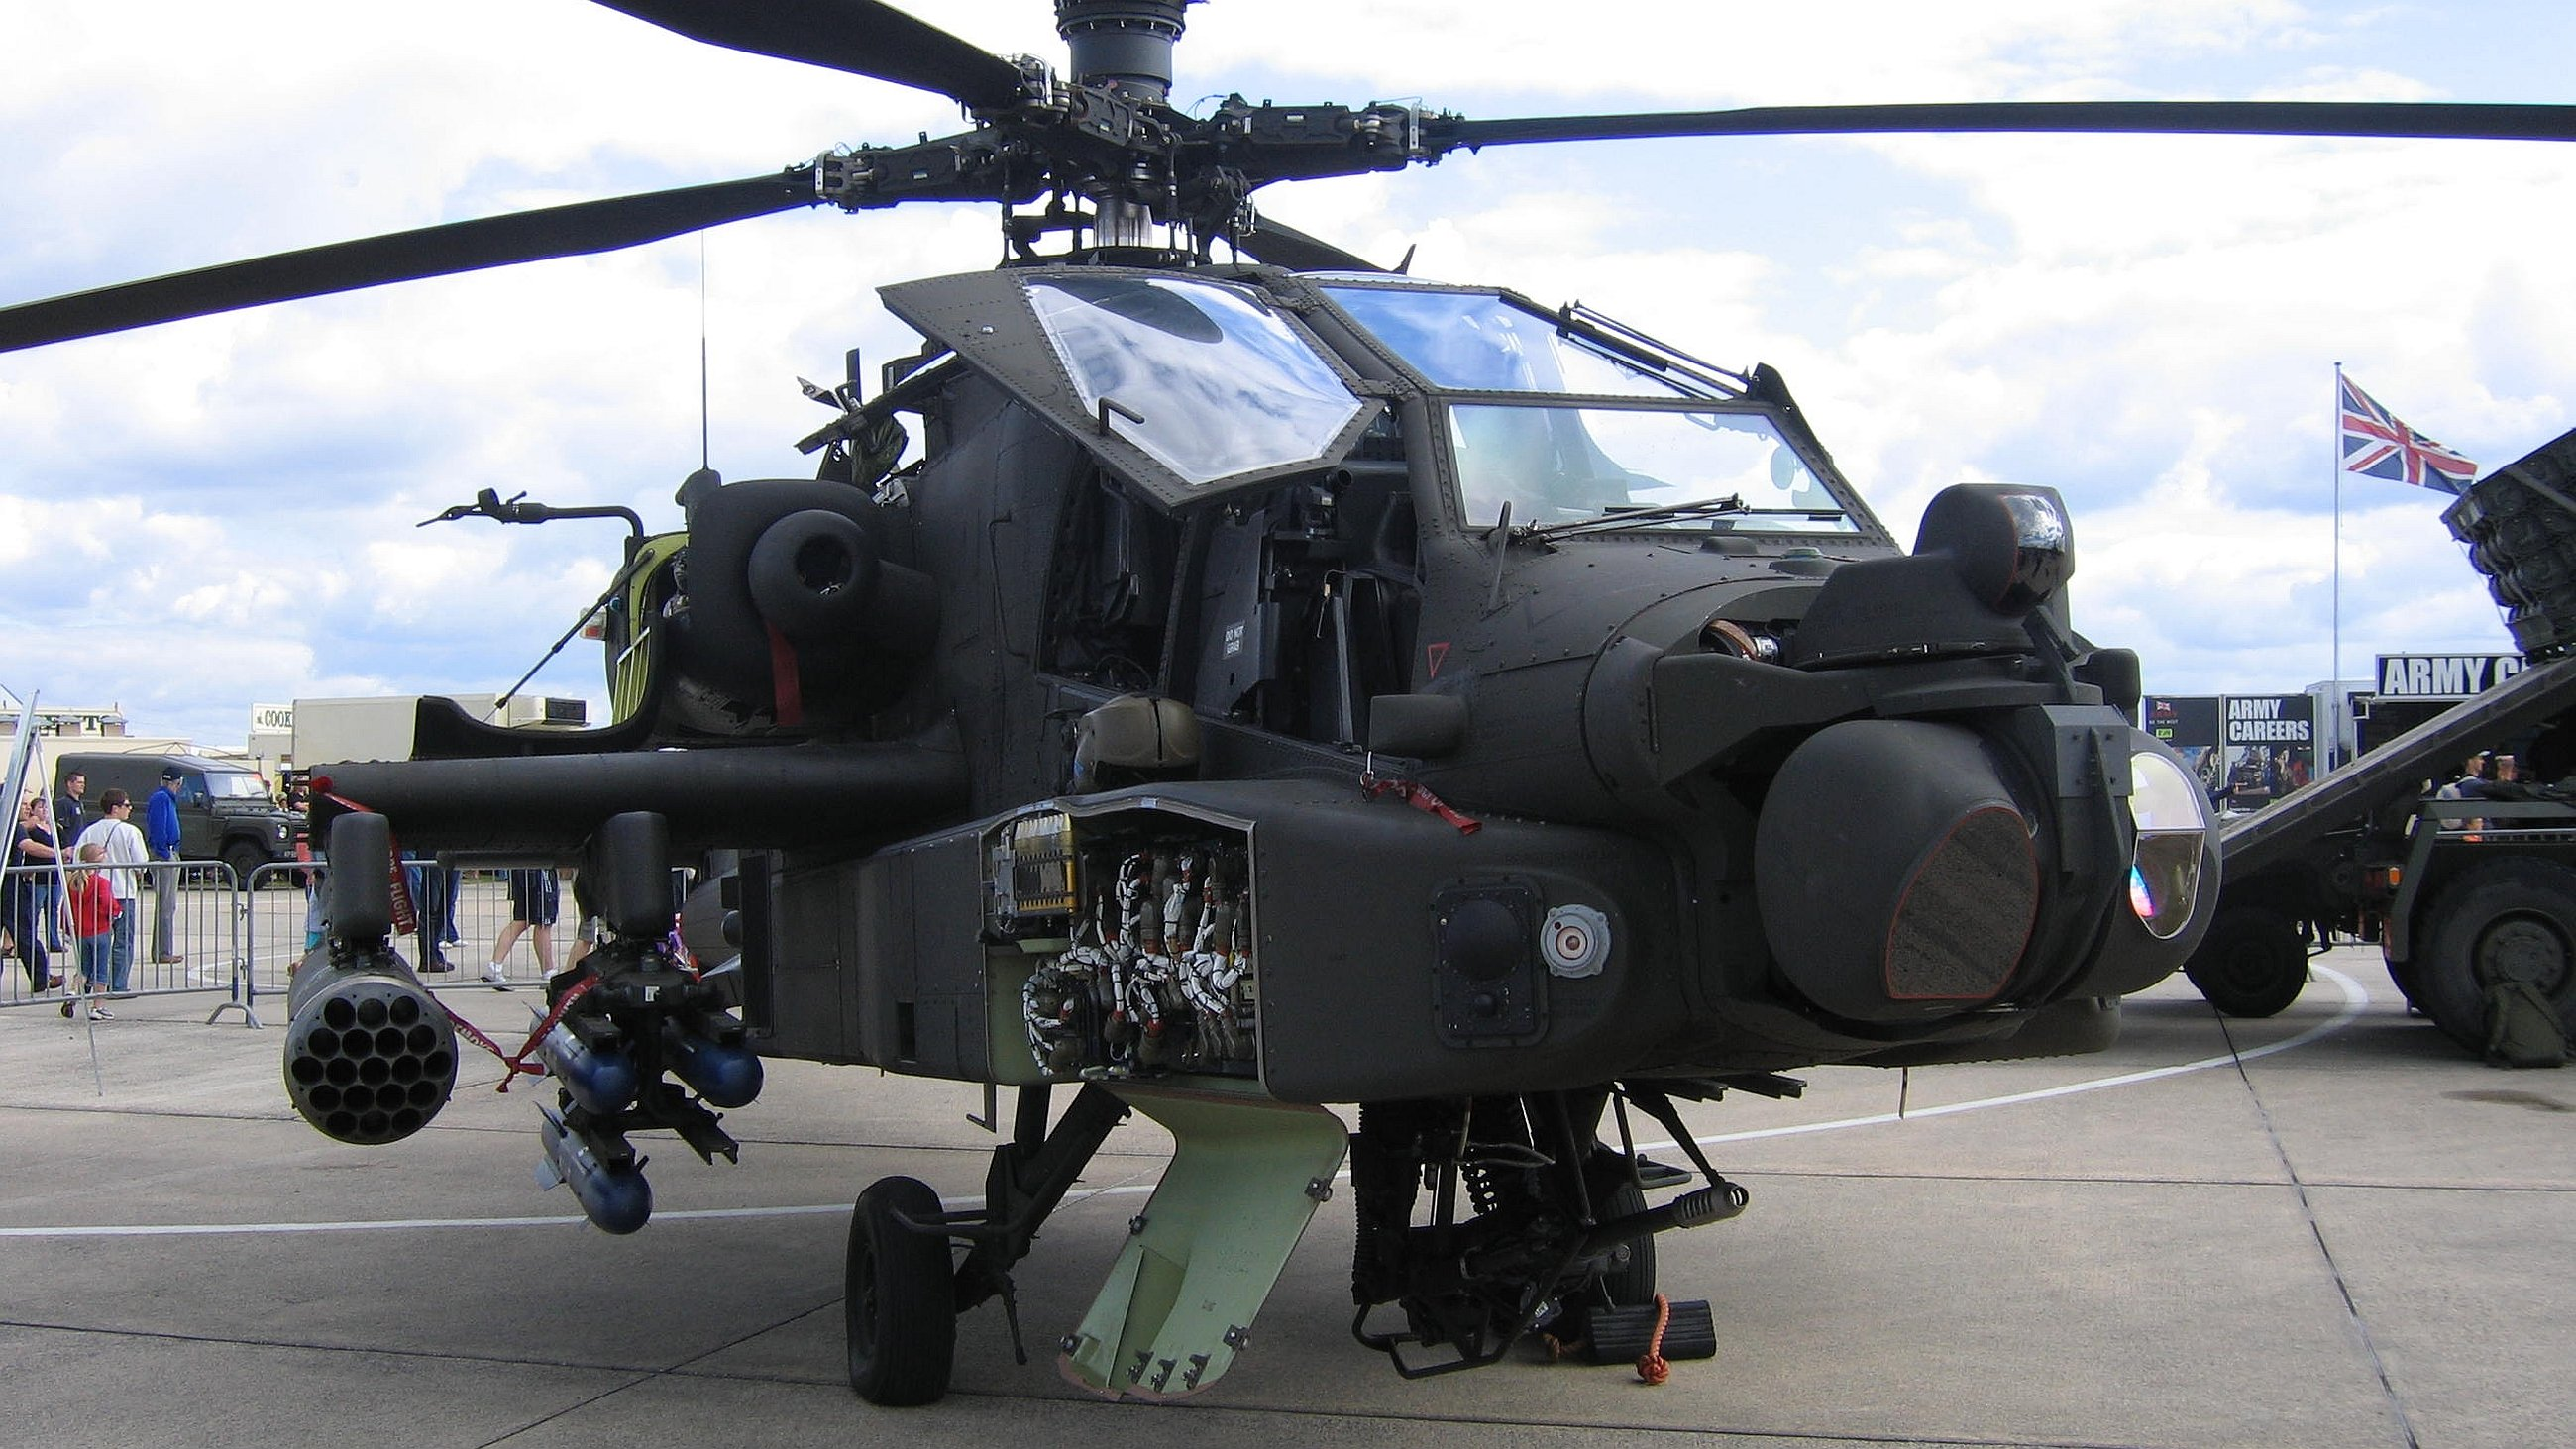 Boeing Ah 64 Apache Computer Wallpapers Desktop Backgrounds 2600x1463